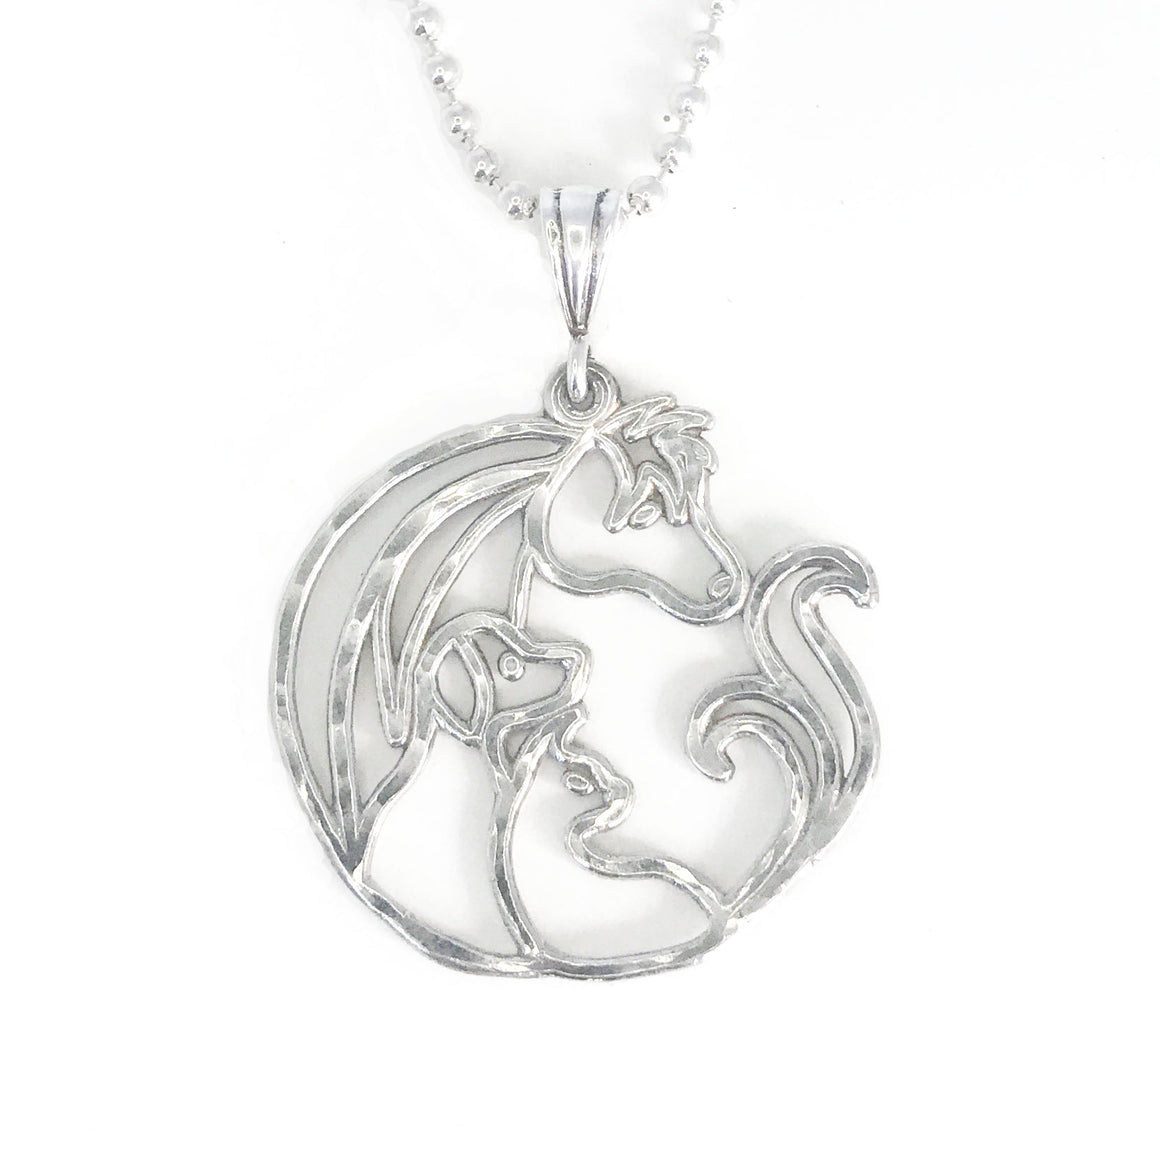 Animal Jam Large Pendant with Silver Ball Chain